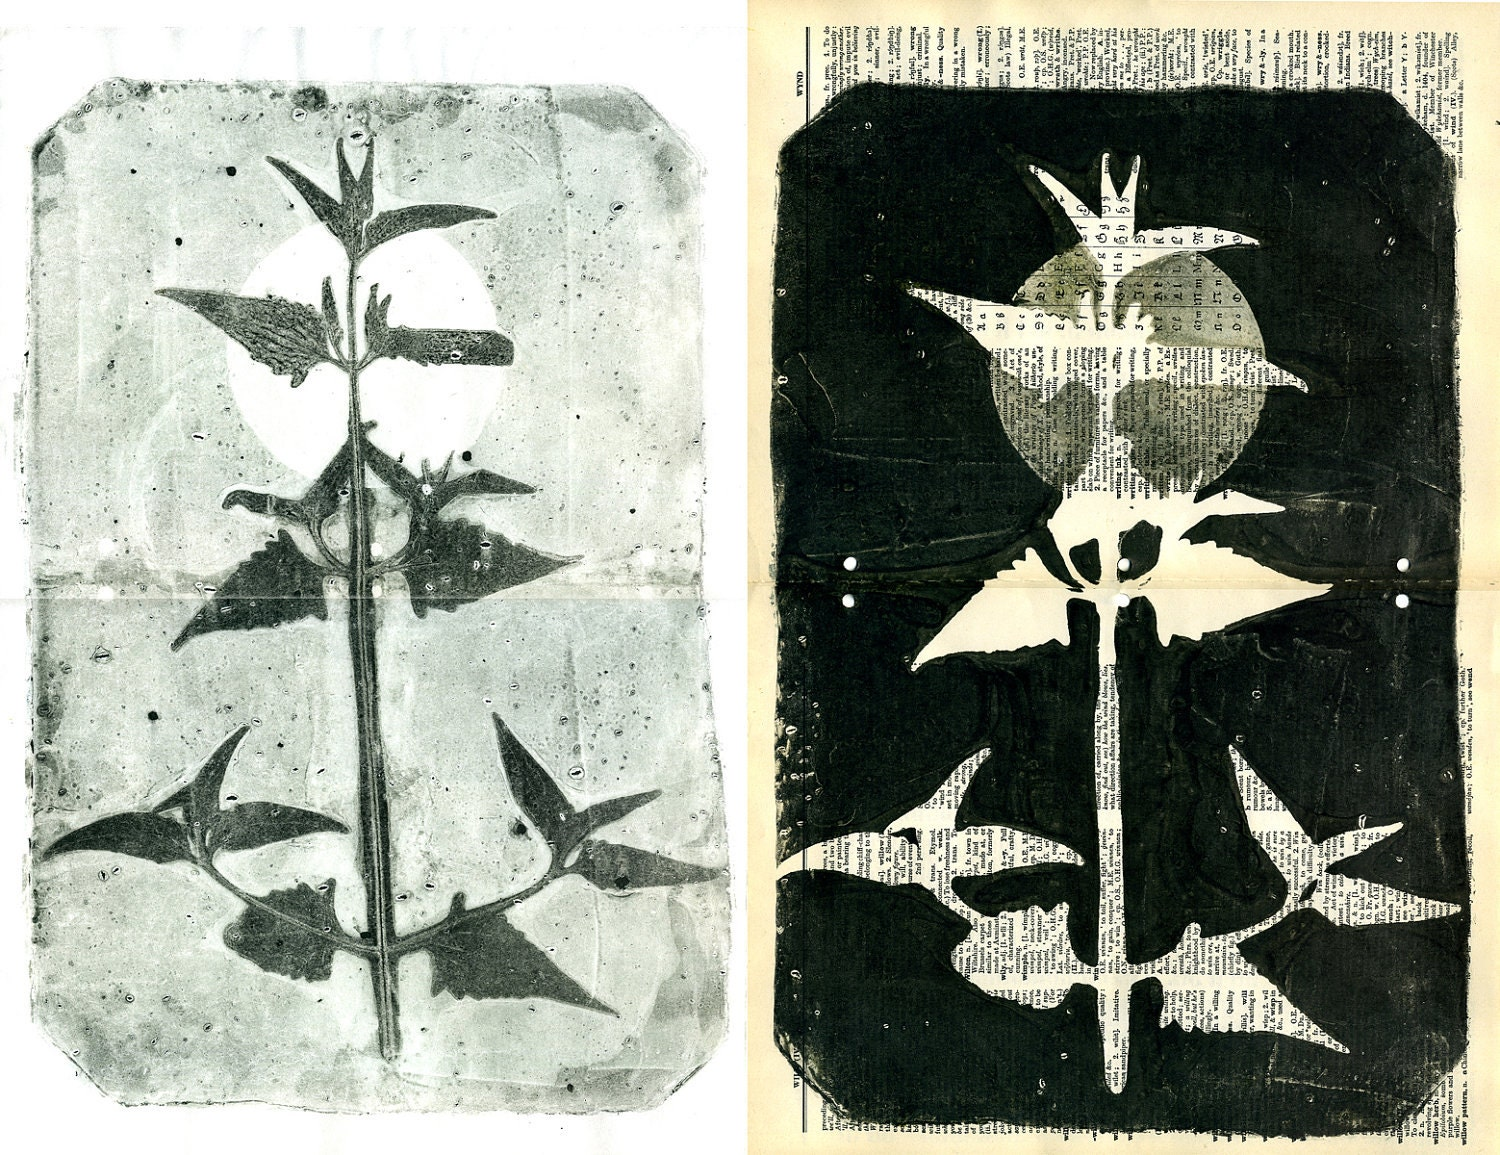 ooak Monotypes: pair of Botanical Silhouettes on Vintage Dictionary Sheets and Rice paper - 88editions